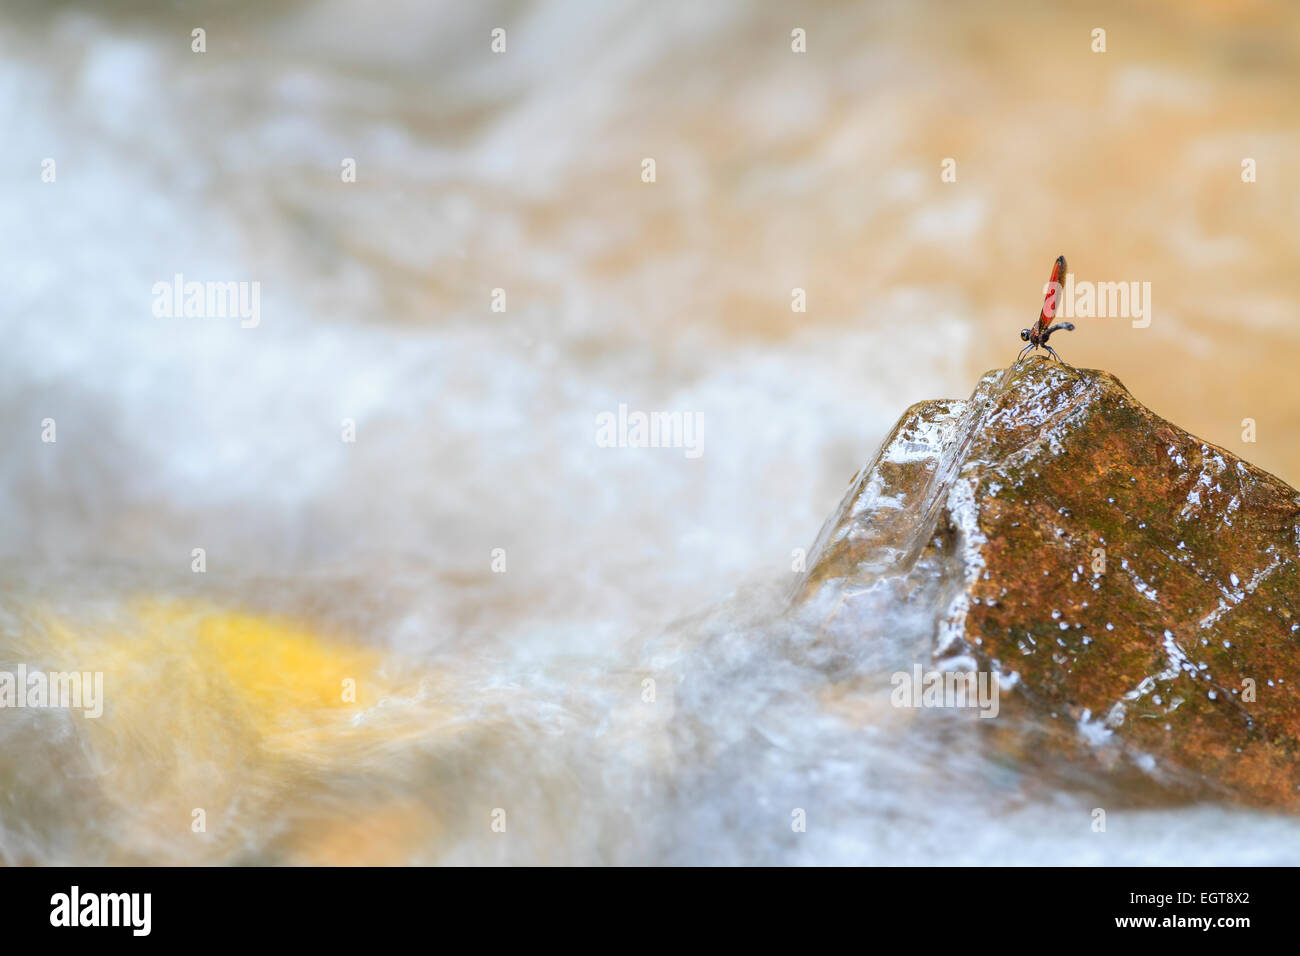 Dragonfly perched on rock in rainforest stream. Kaeng Krachan National Park. Thailand. Stock Photo